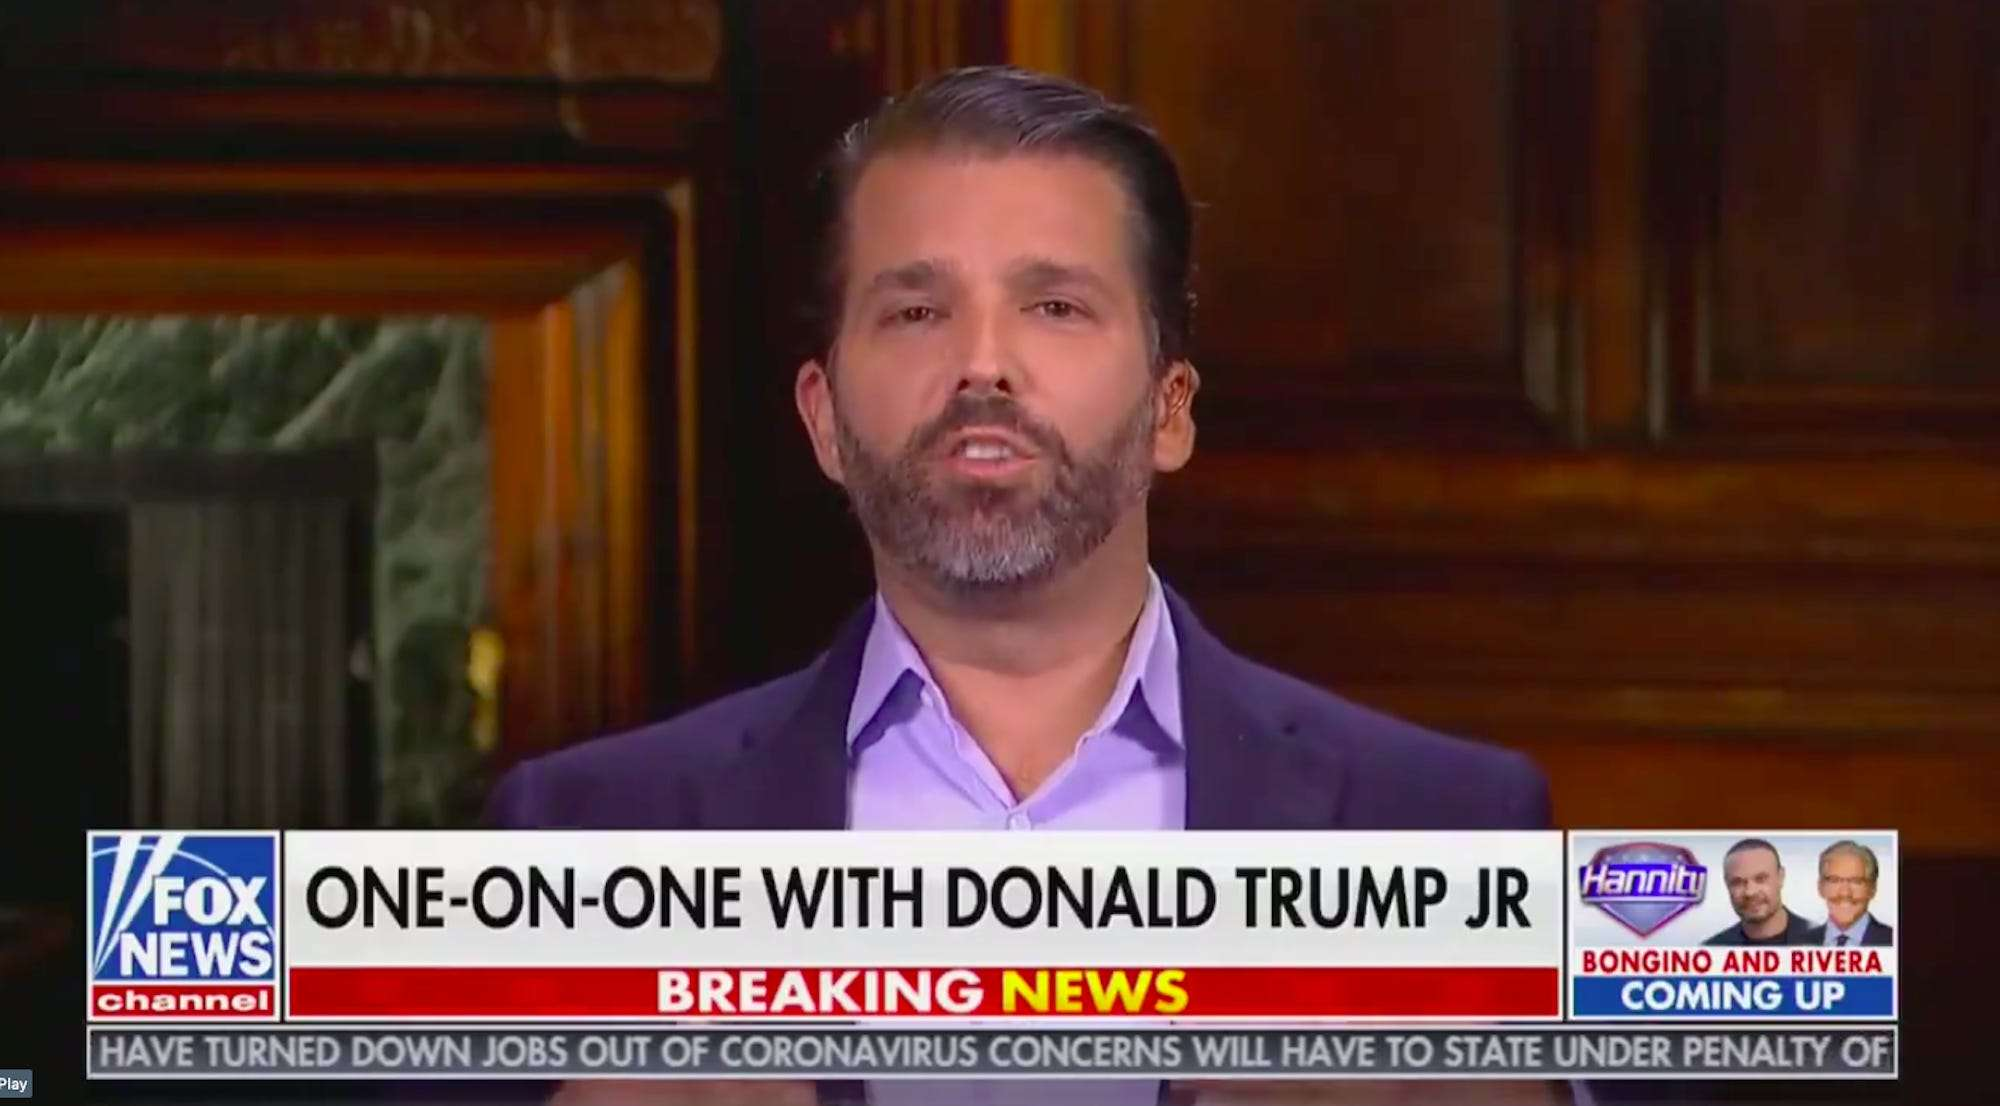 Don Jr. slammed Republicans who 'lose gracefully' and said that Trump showed 'you can actually push back'